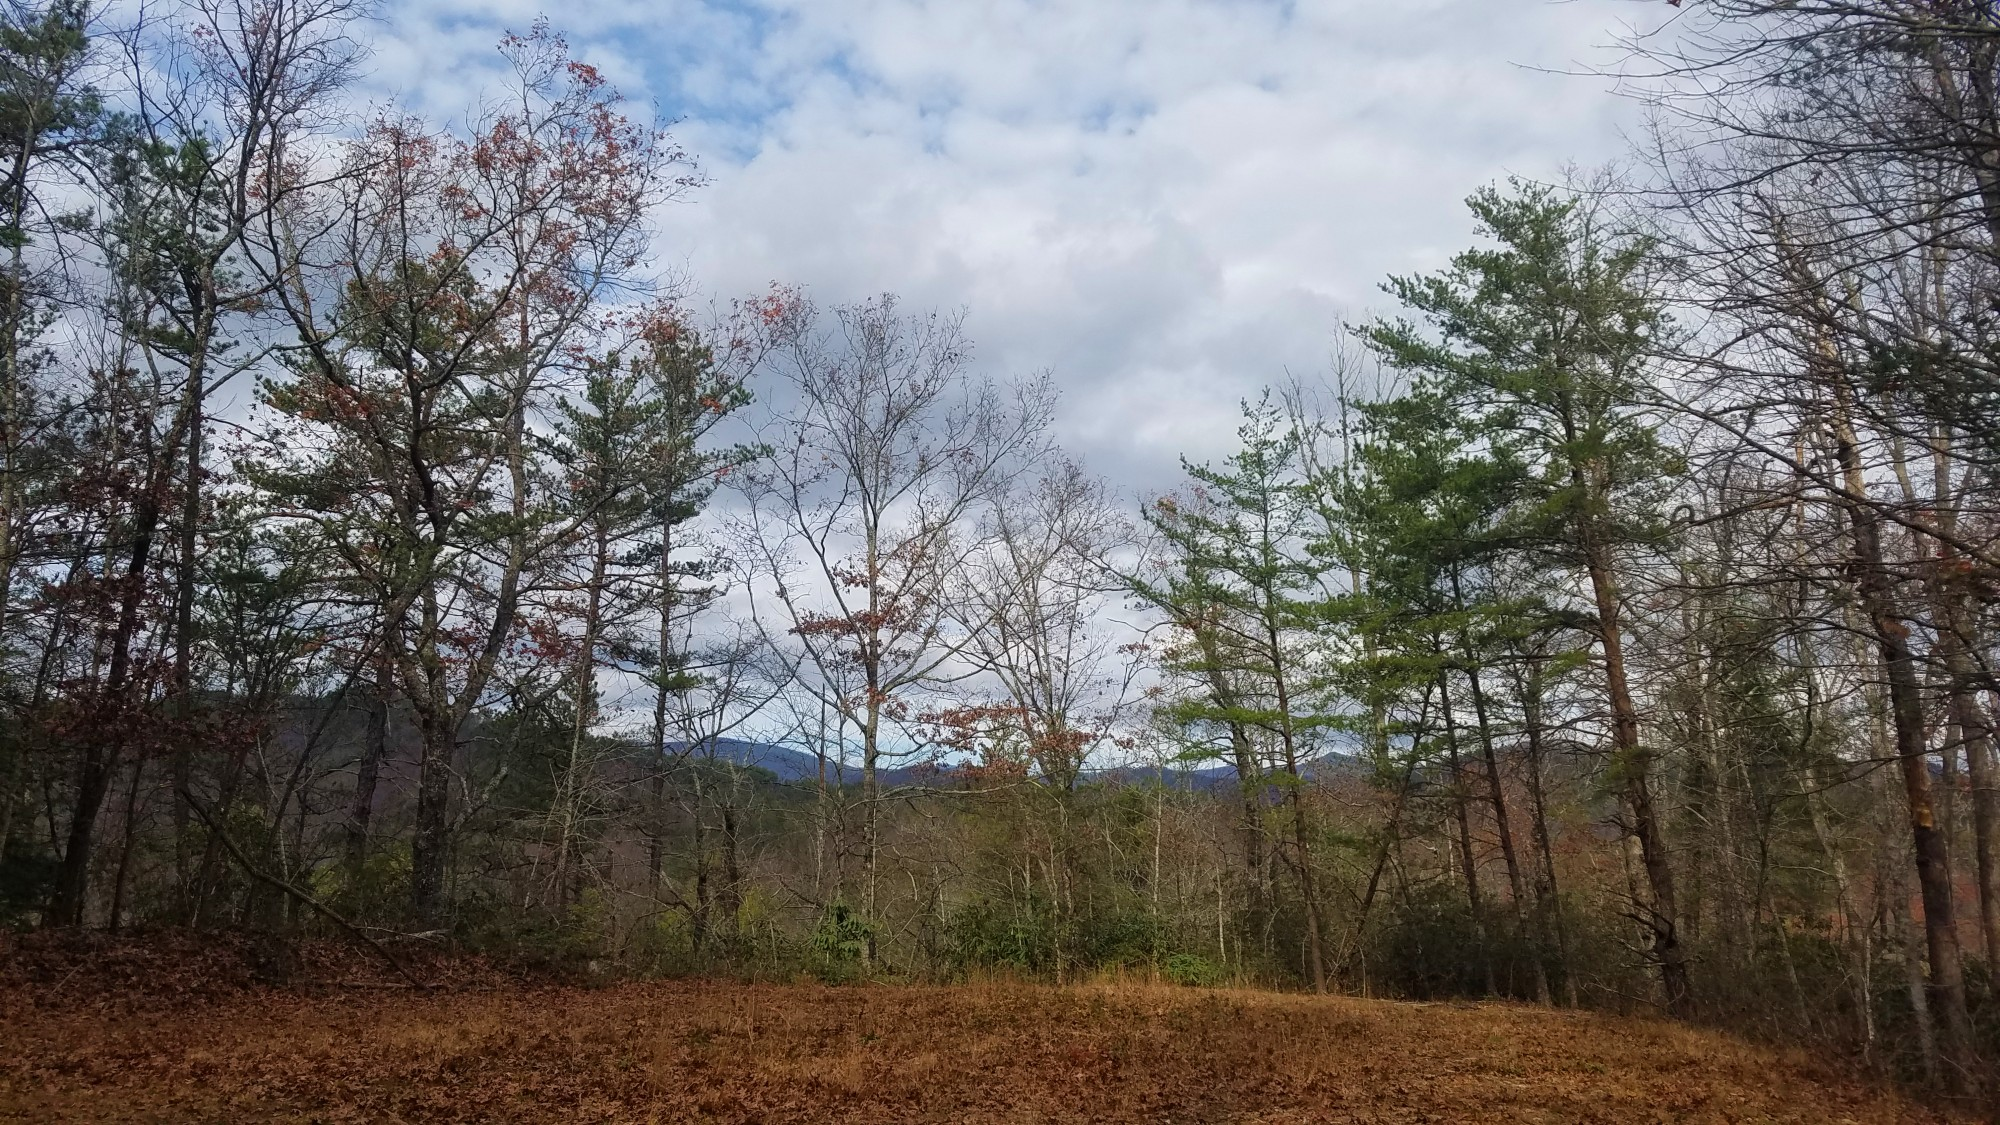 Outdoor scene with a row of tall trees and mountains behind them